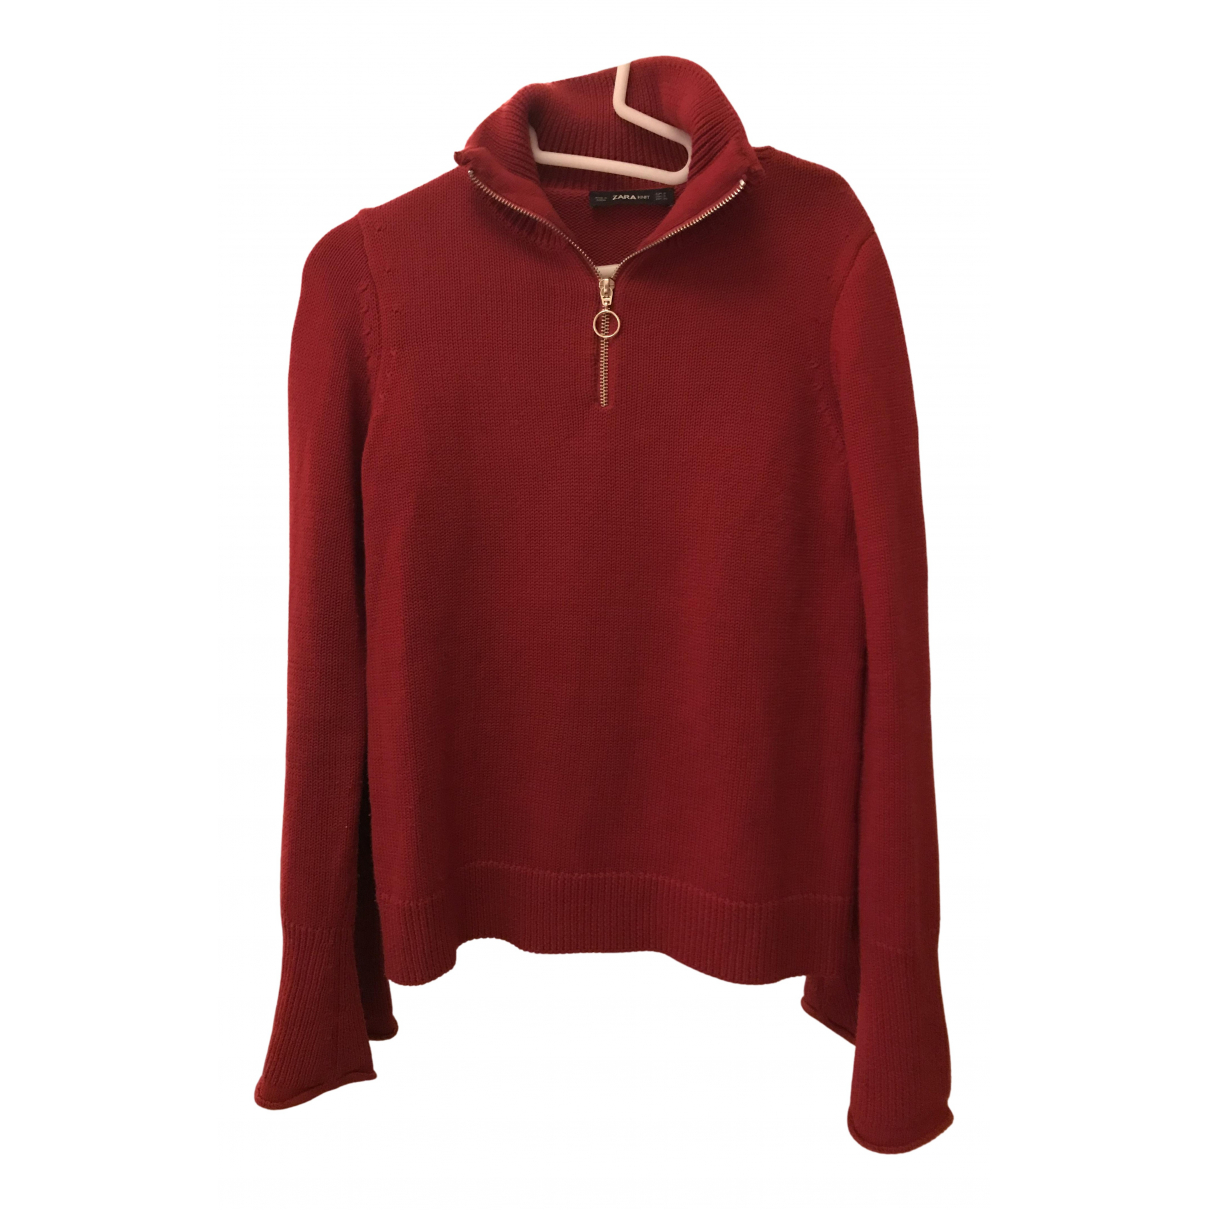 Zara N Red Knitwear for Women S International